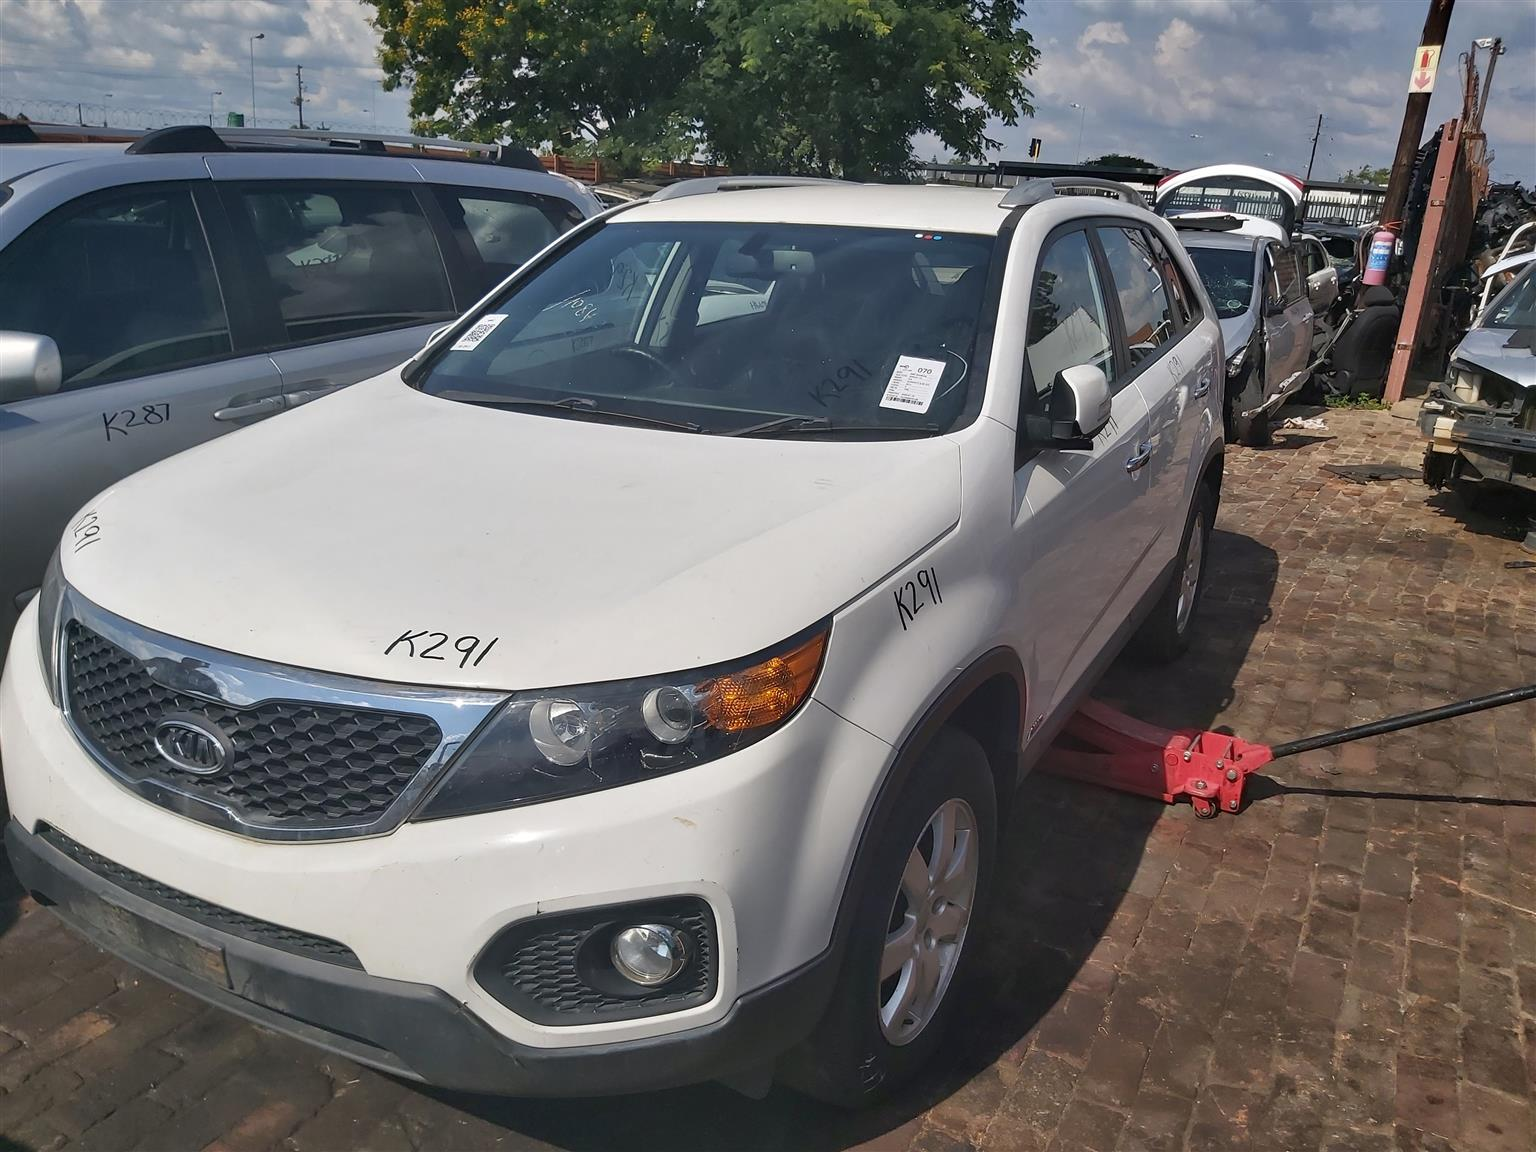 Kia Sorento 2.2 Crdi now for stripping of all parts.